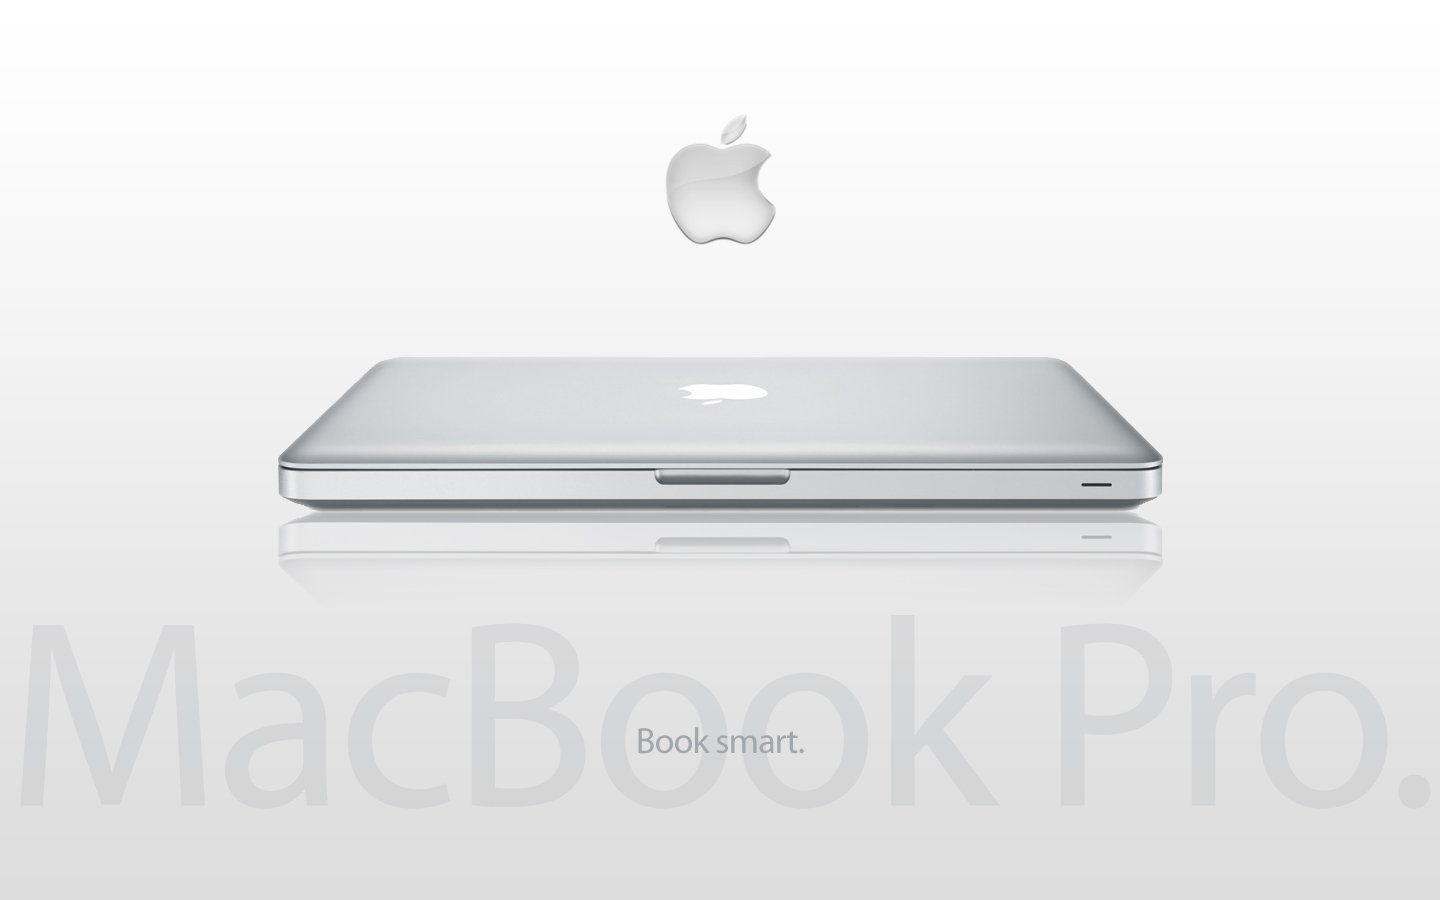 1440x900 Macbook pro Gray desktop PC and Mac wallpaper 1440x900